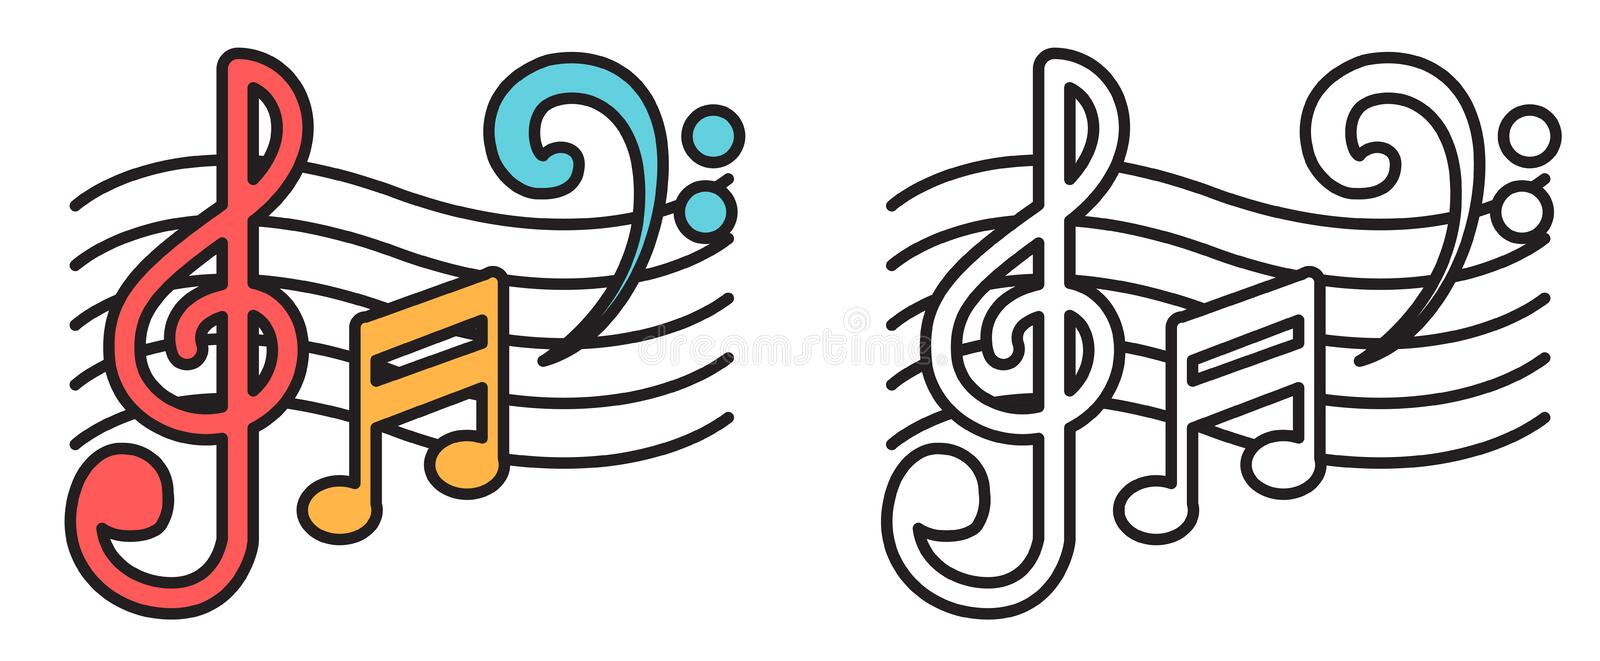 Colorful and black and white music notes for coloring book royalty free illustration